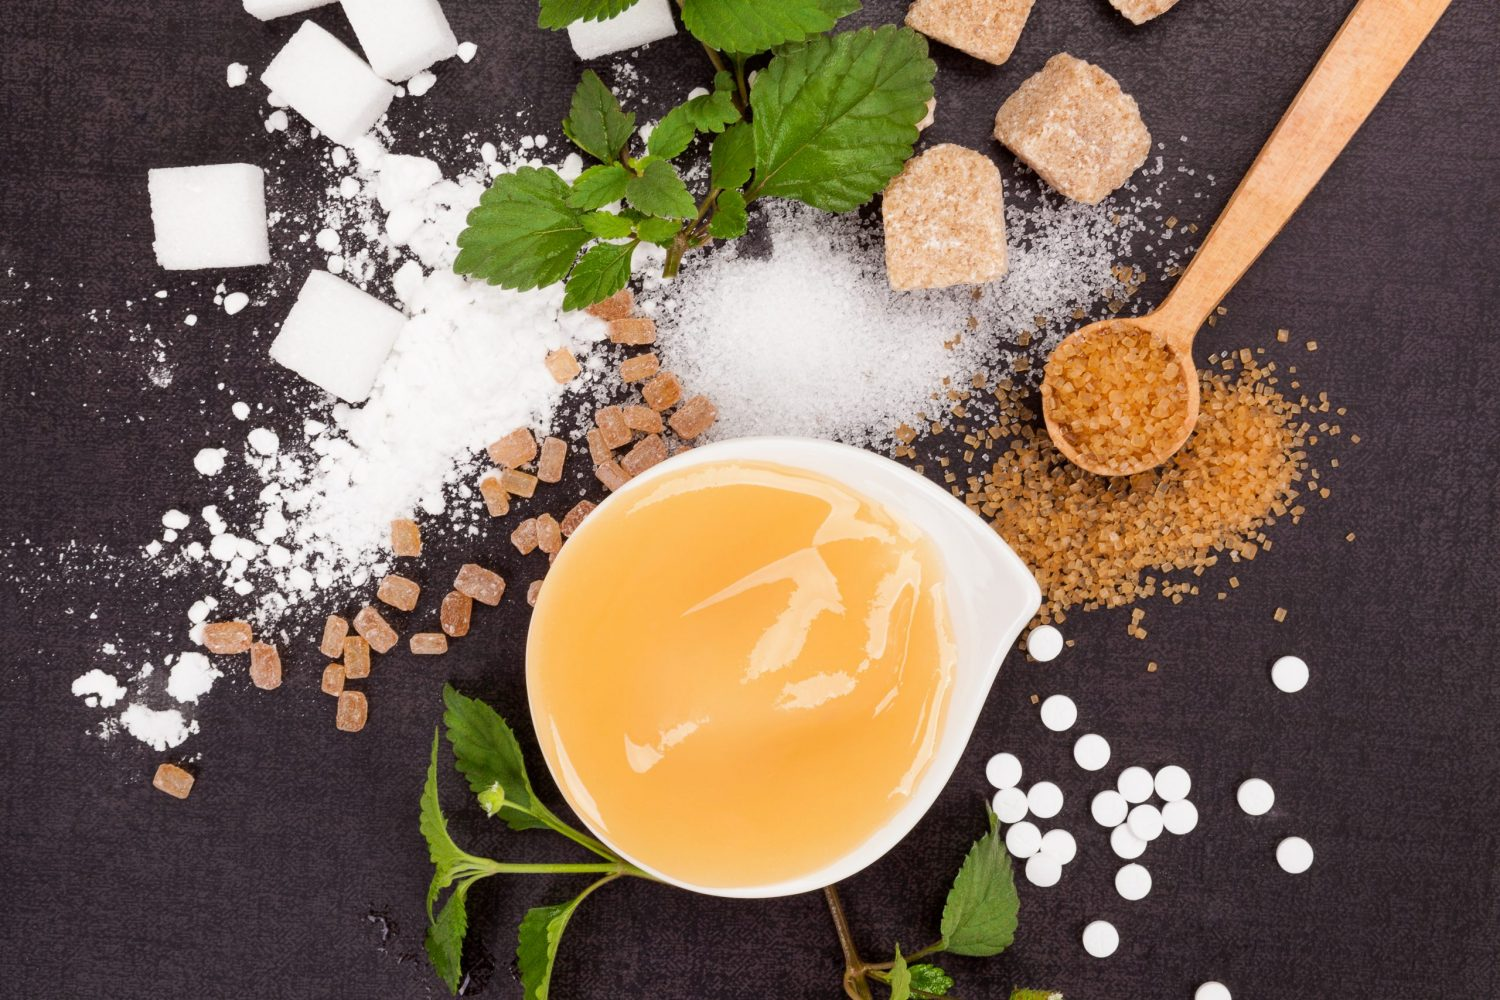 Sweet Nothings: The Truth About Artificial Sweeteners